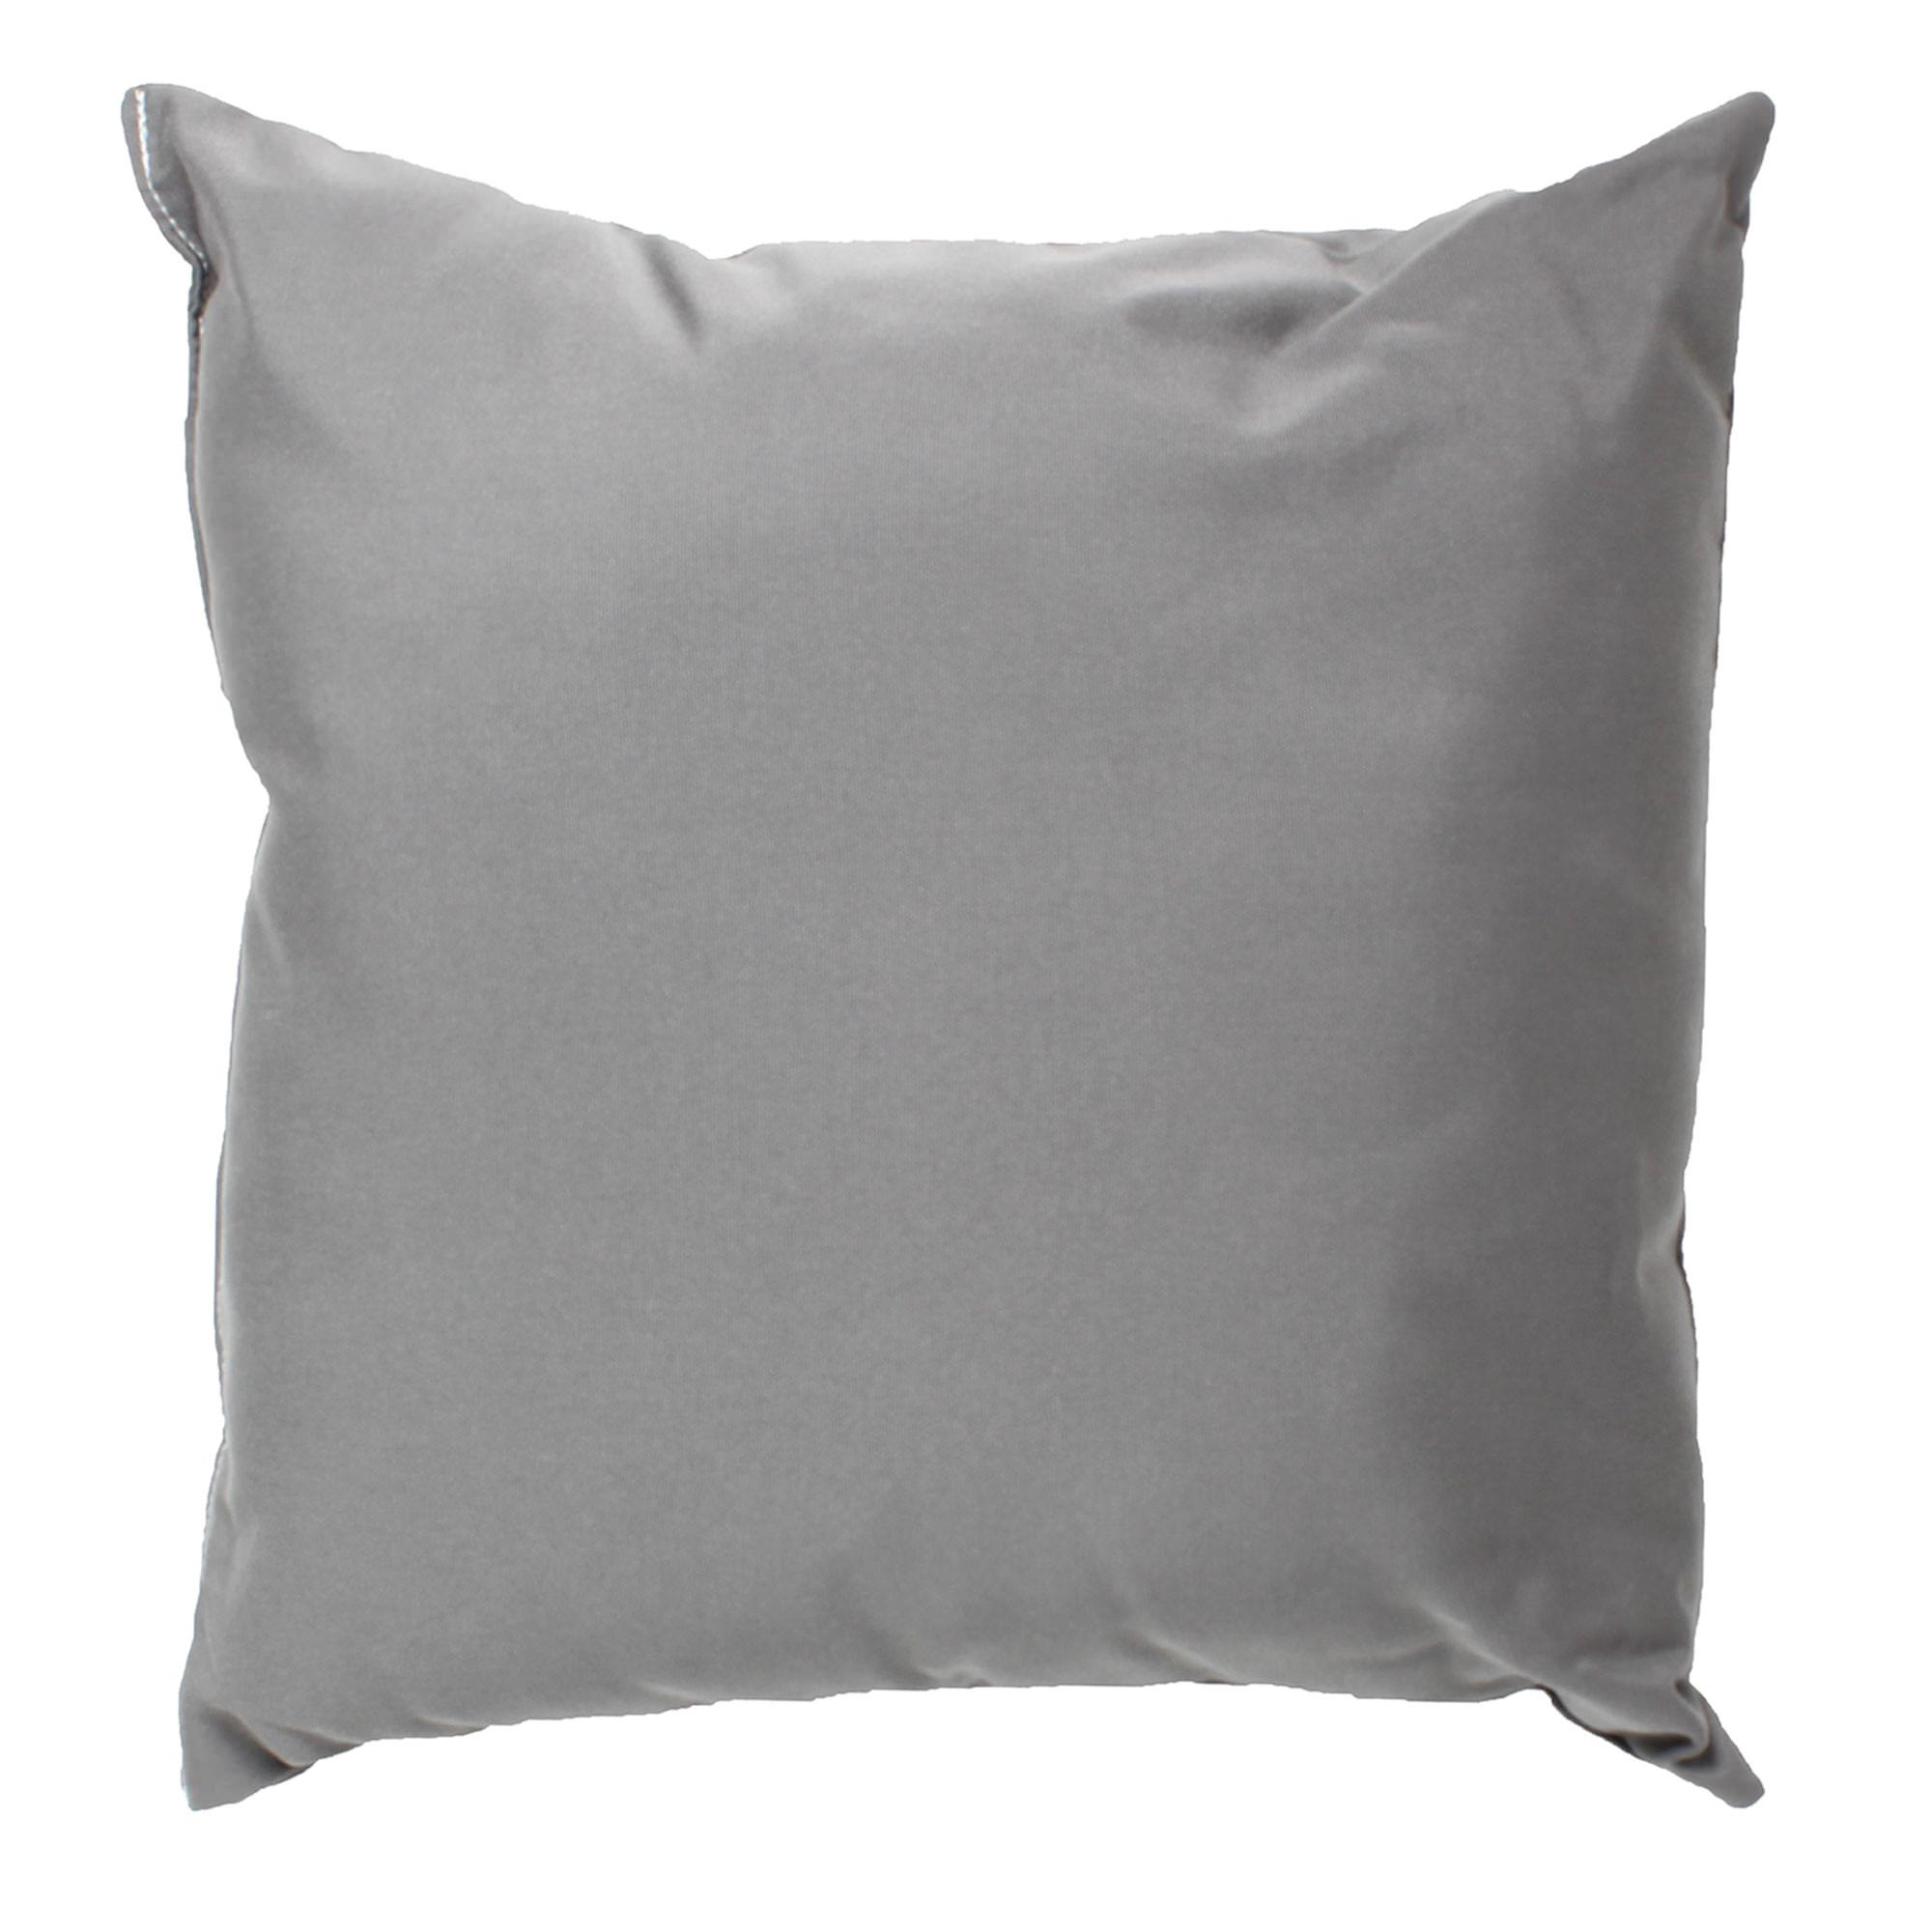 charcoal grey sunbrella outdoor throw pillow - charcoal gray sunbrella outdoor throw pillow